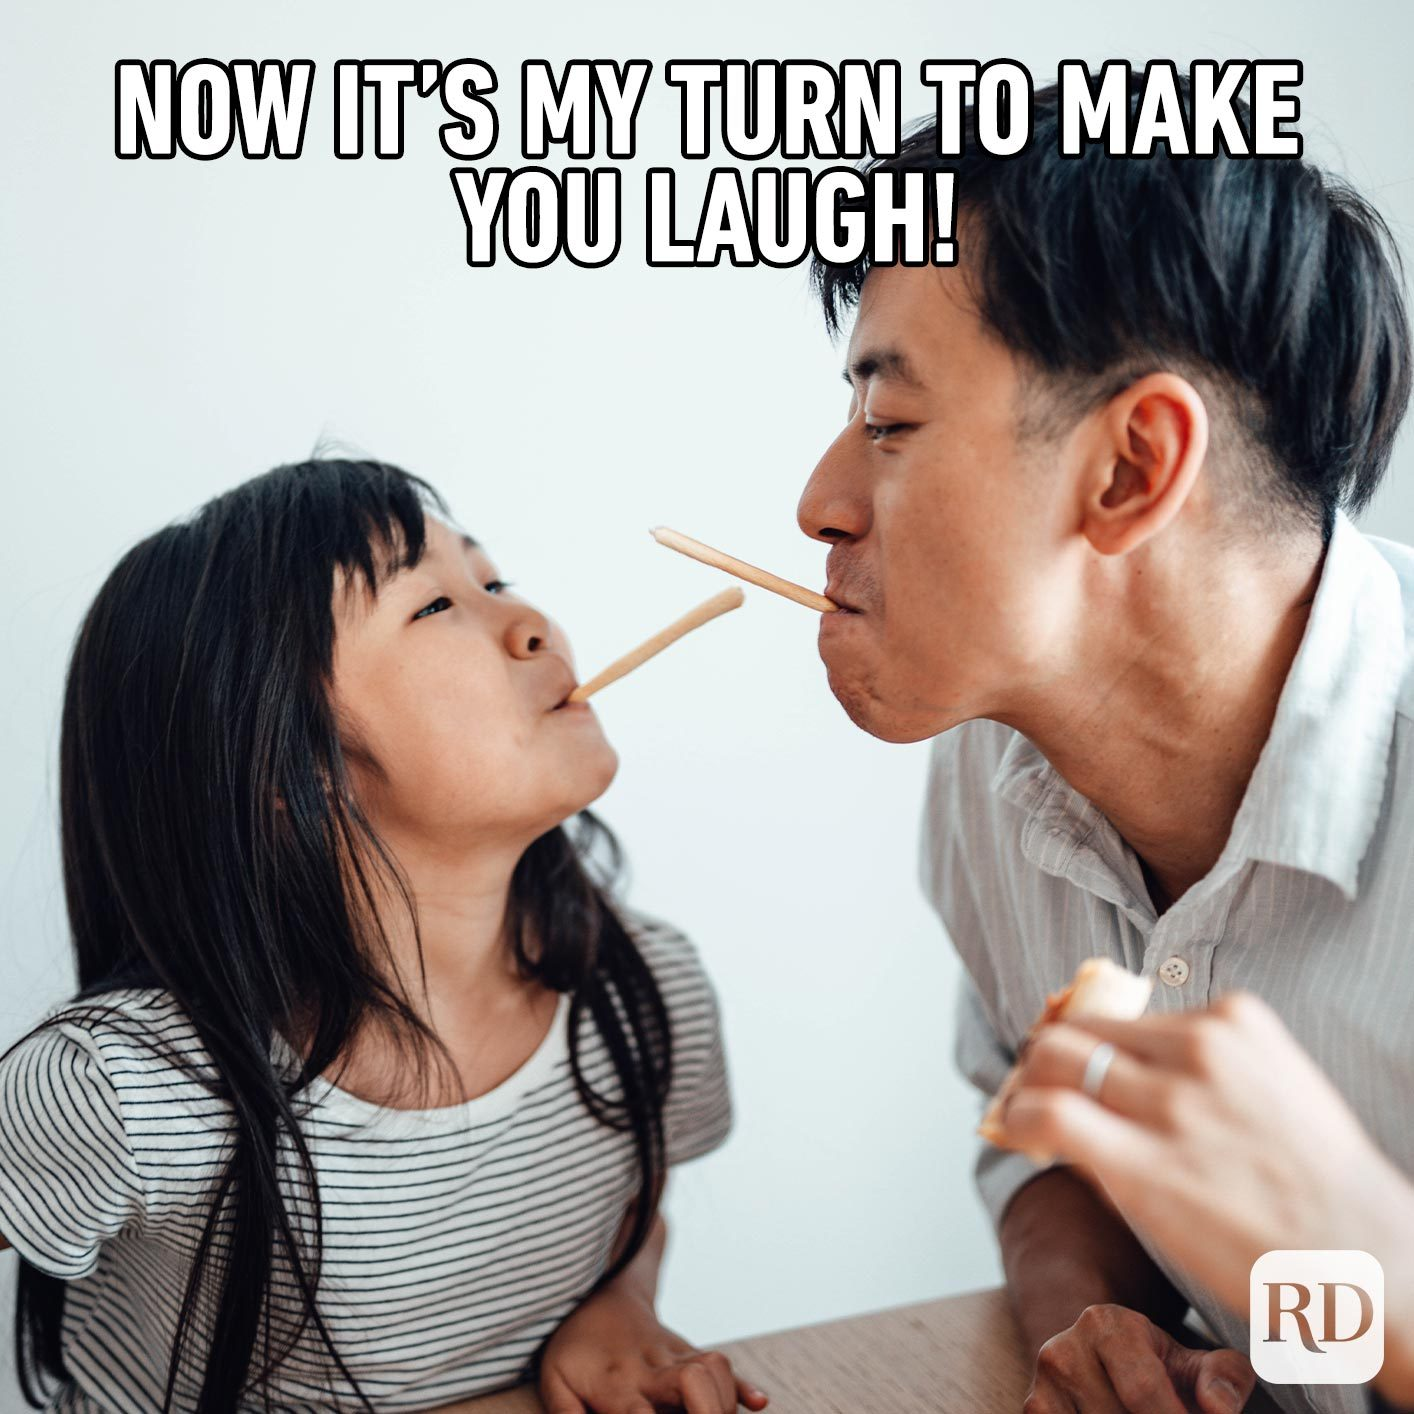 Girl and father with snack sticks in their mouths, smiling. Meme text: Now it's my turn to make you laugh!